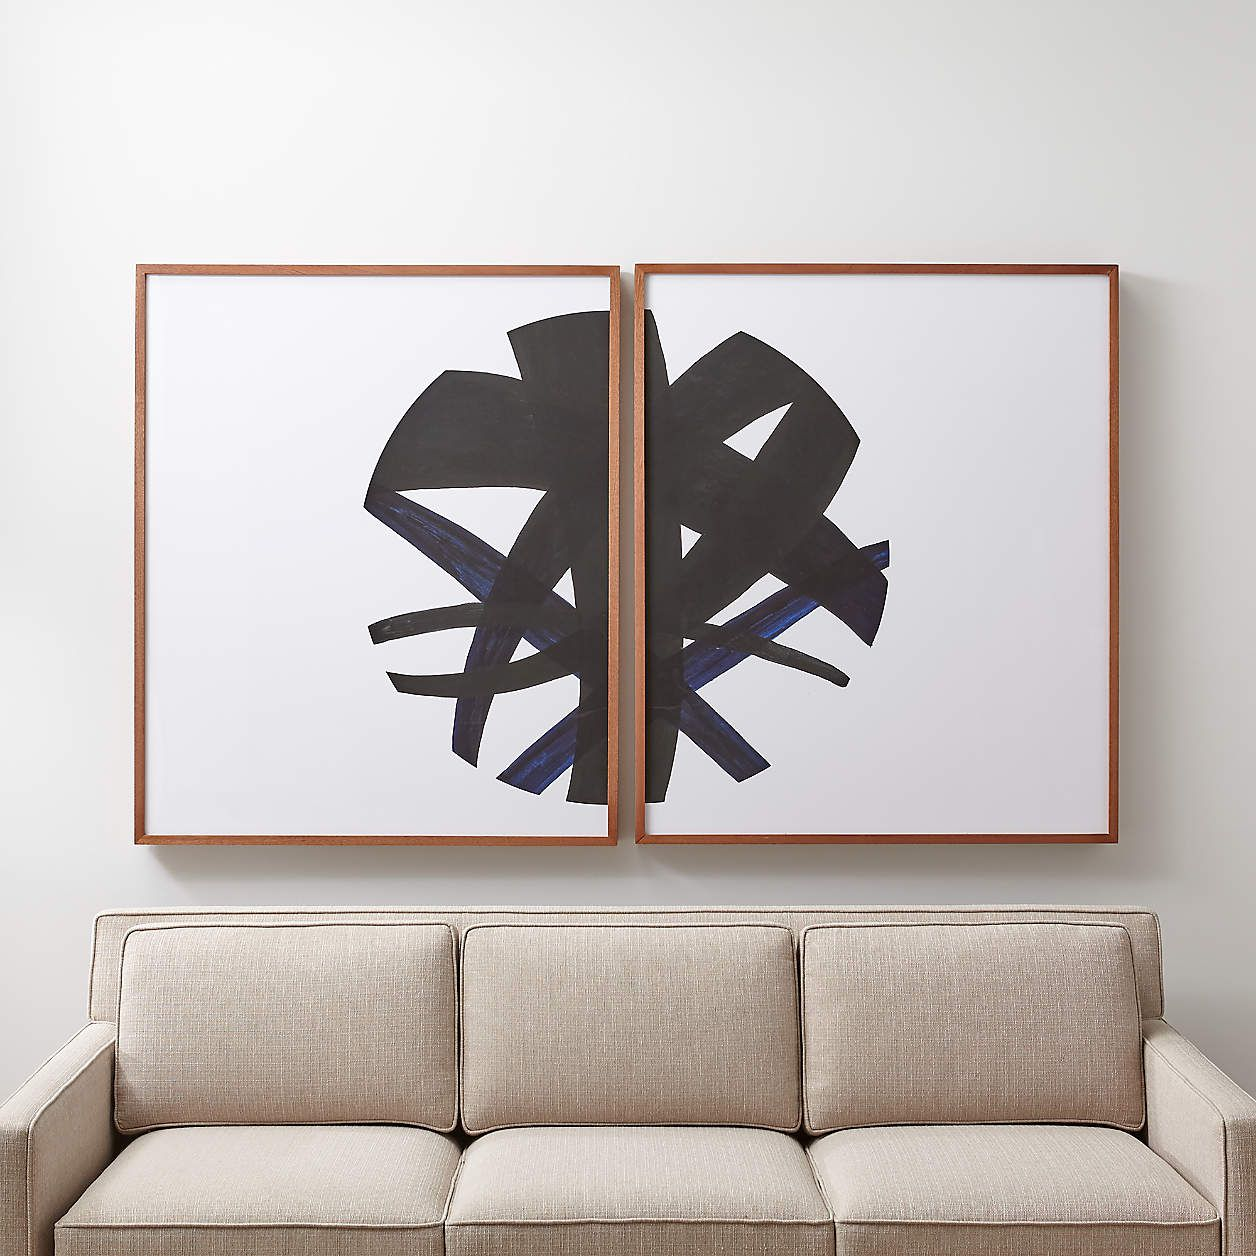 Crate & Barrel Infinity Prints Set of Two